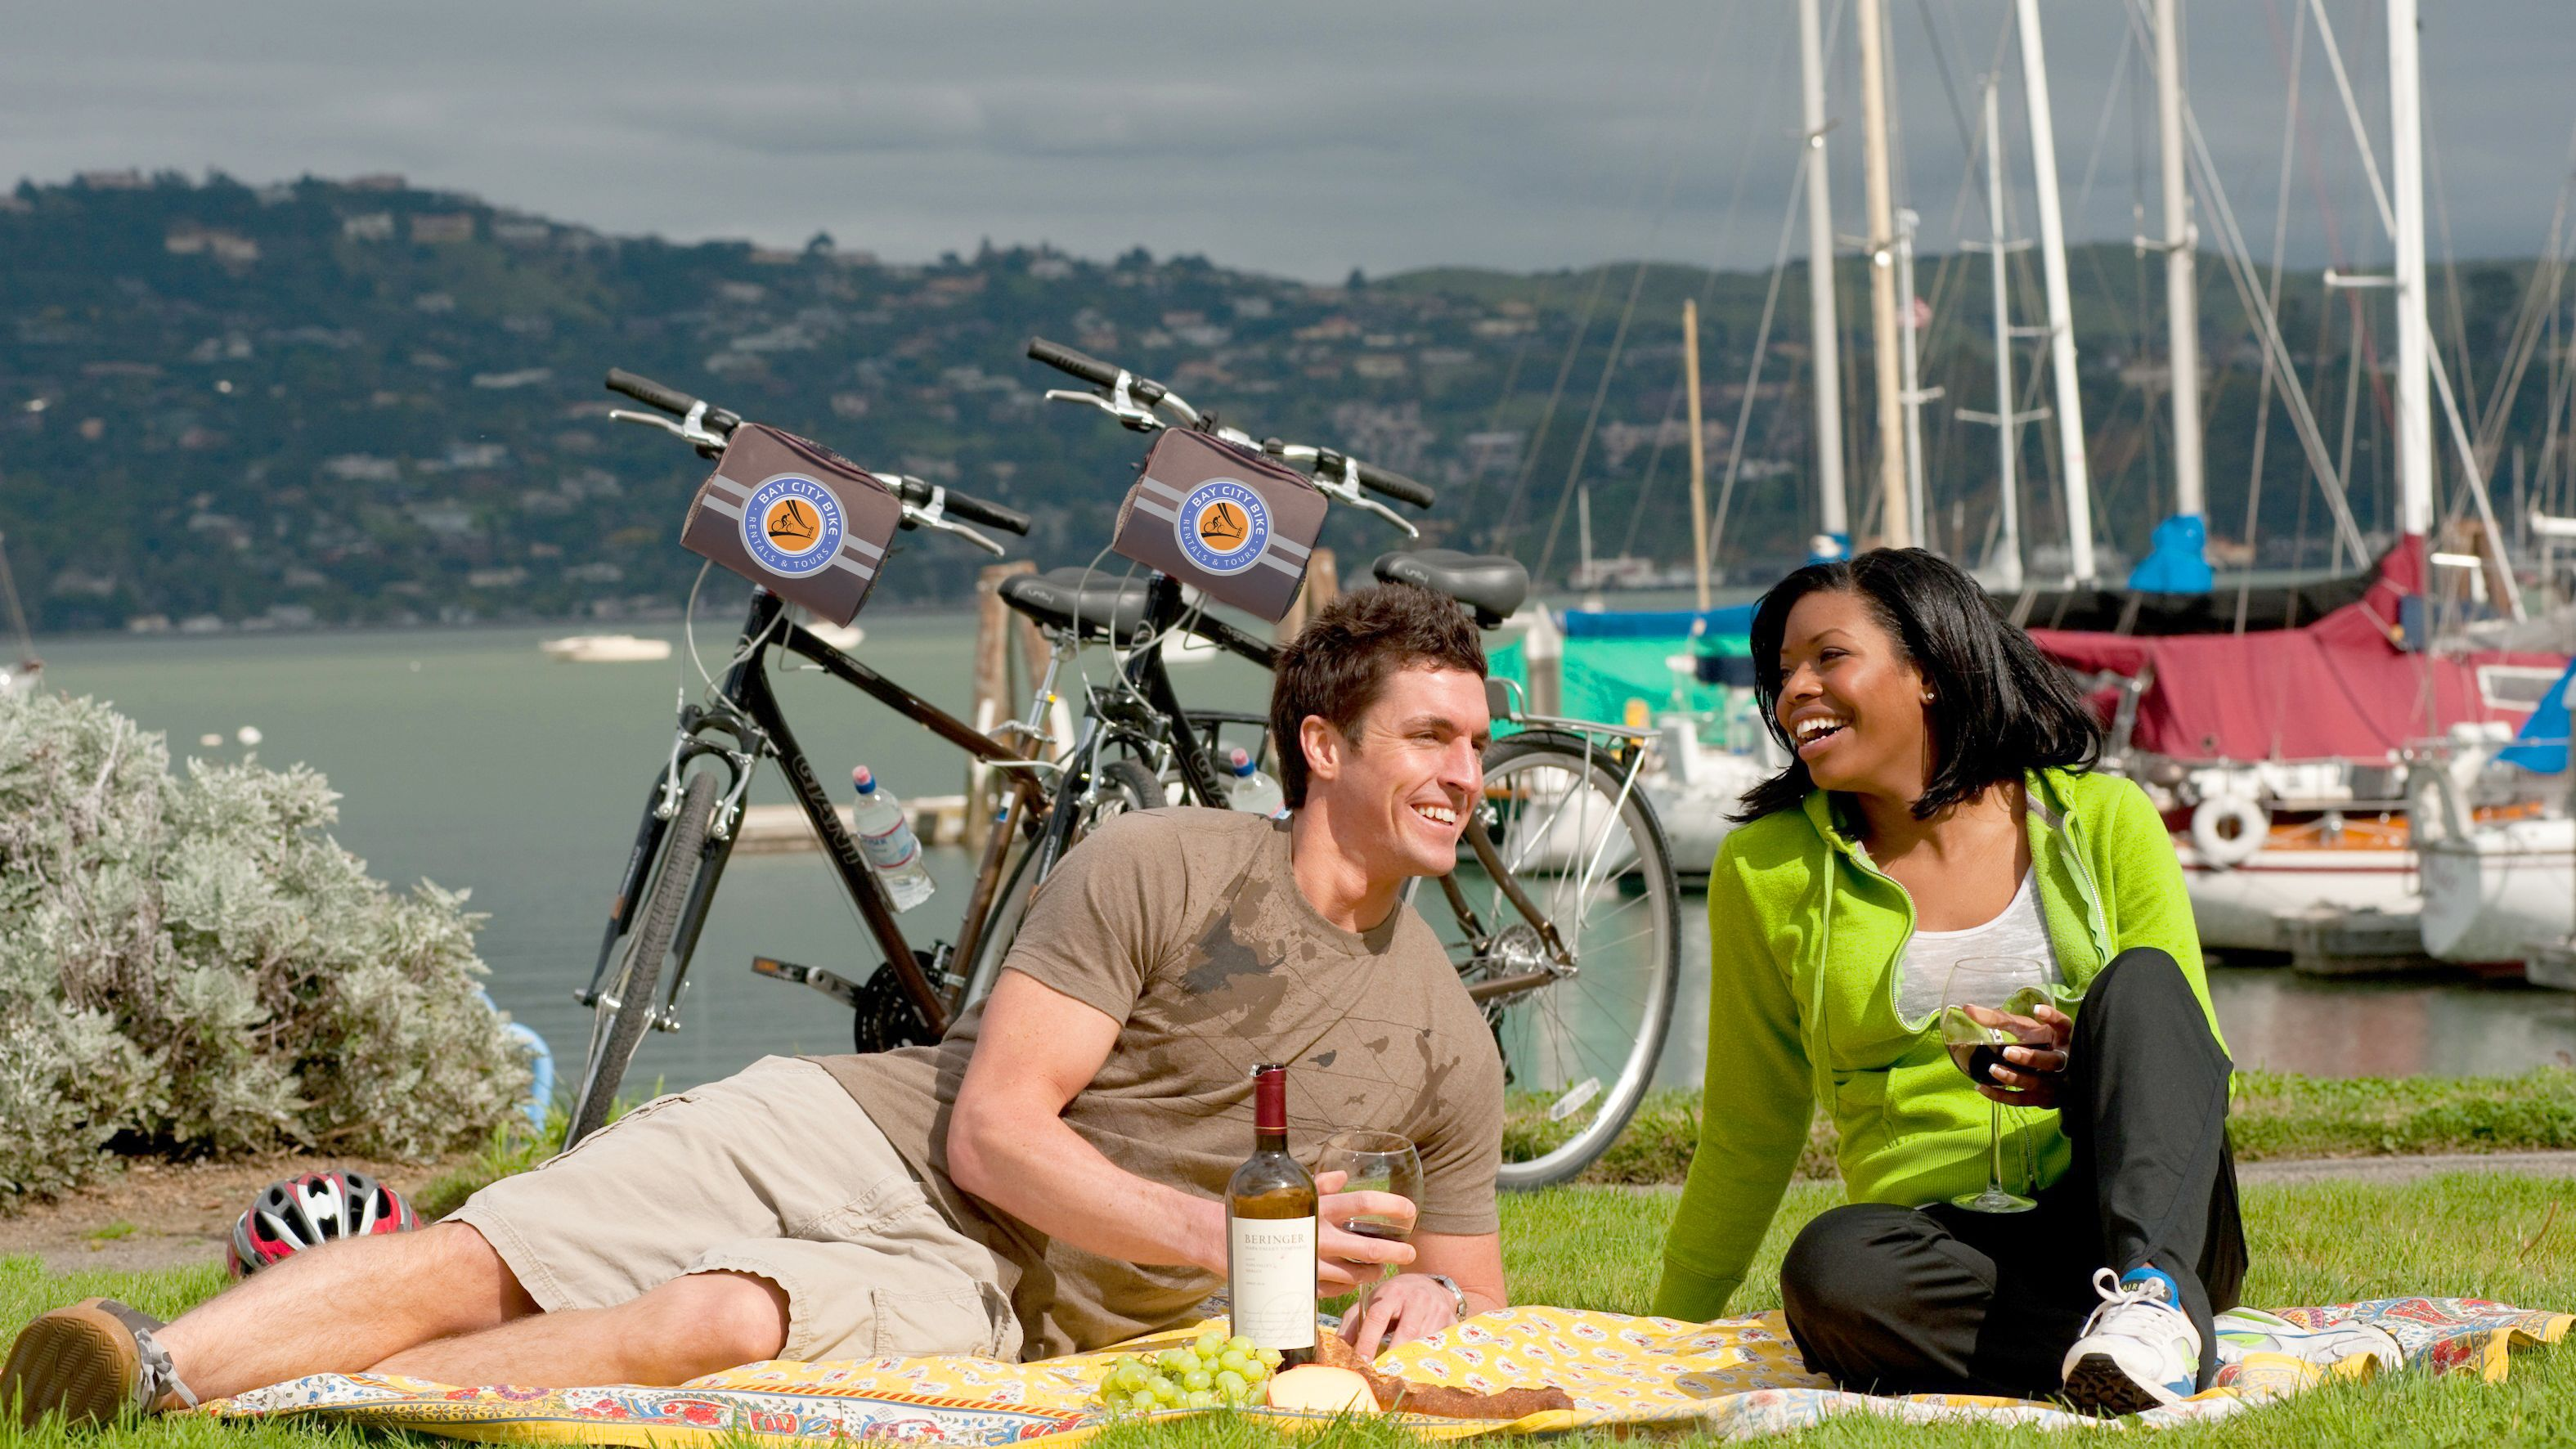 Couple picnicking in San Francisco